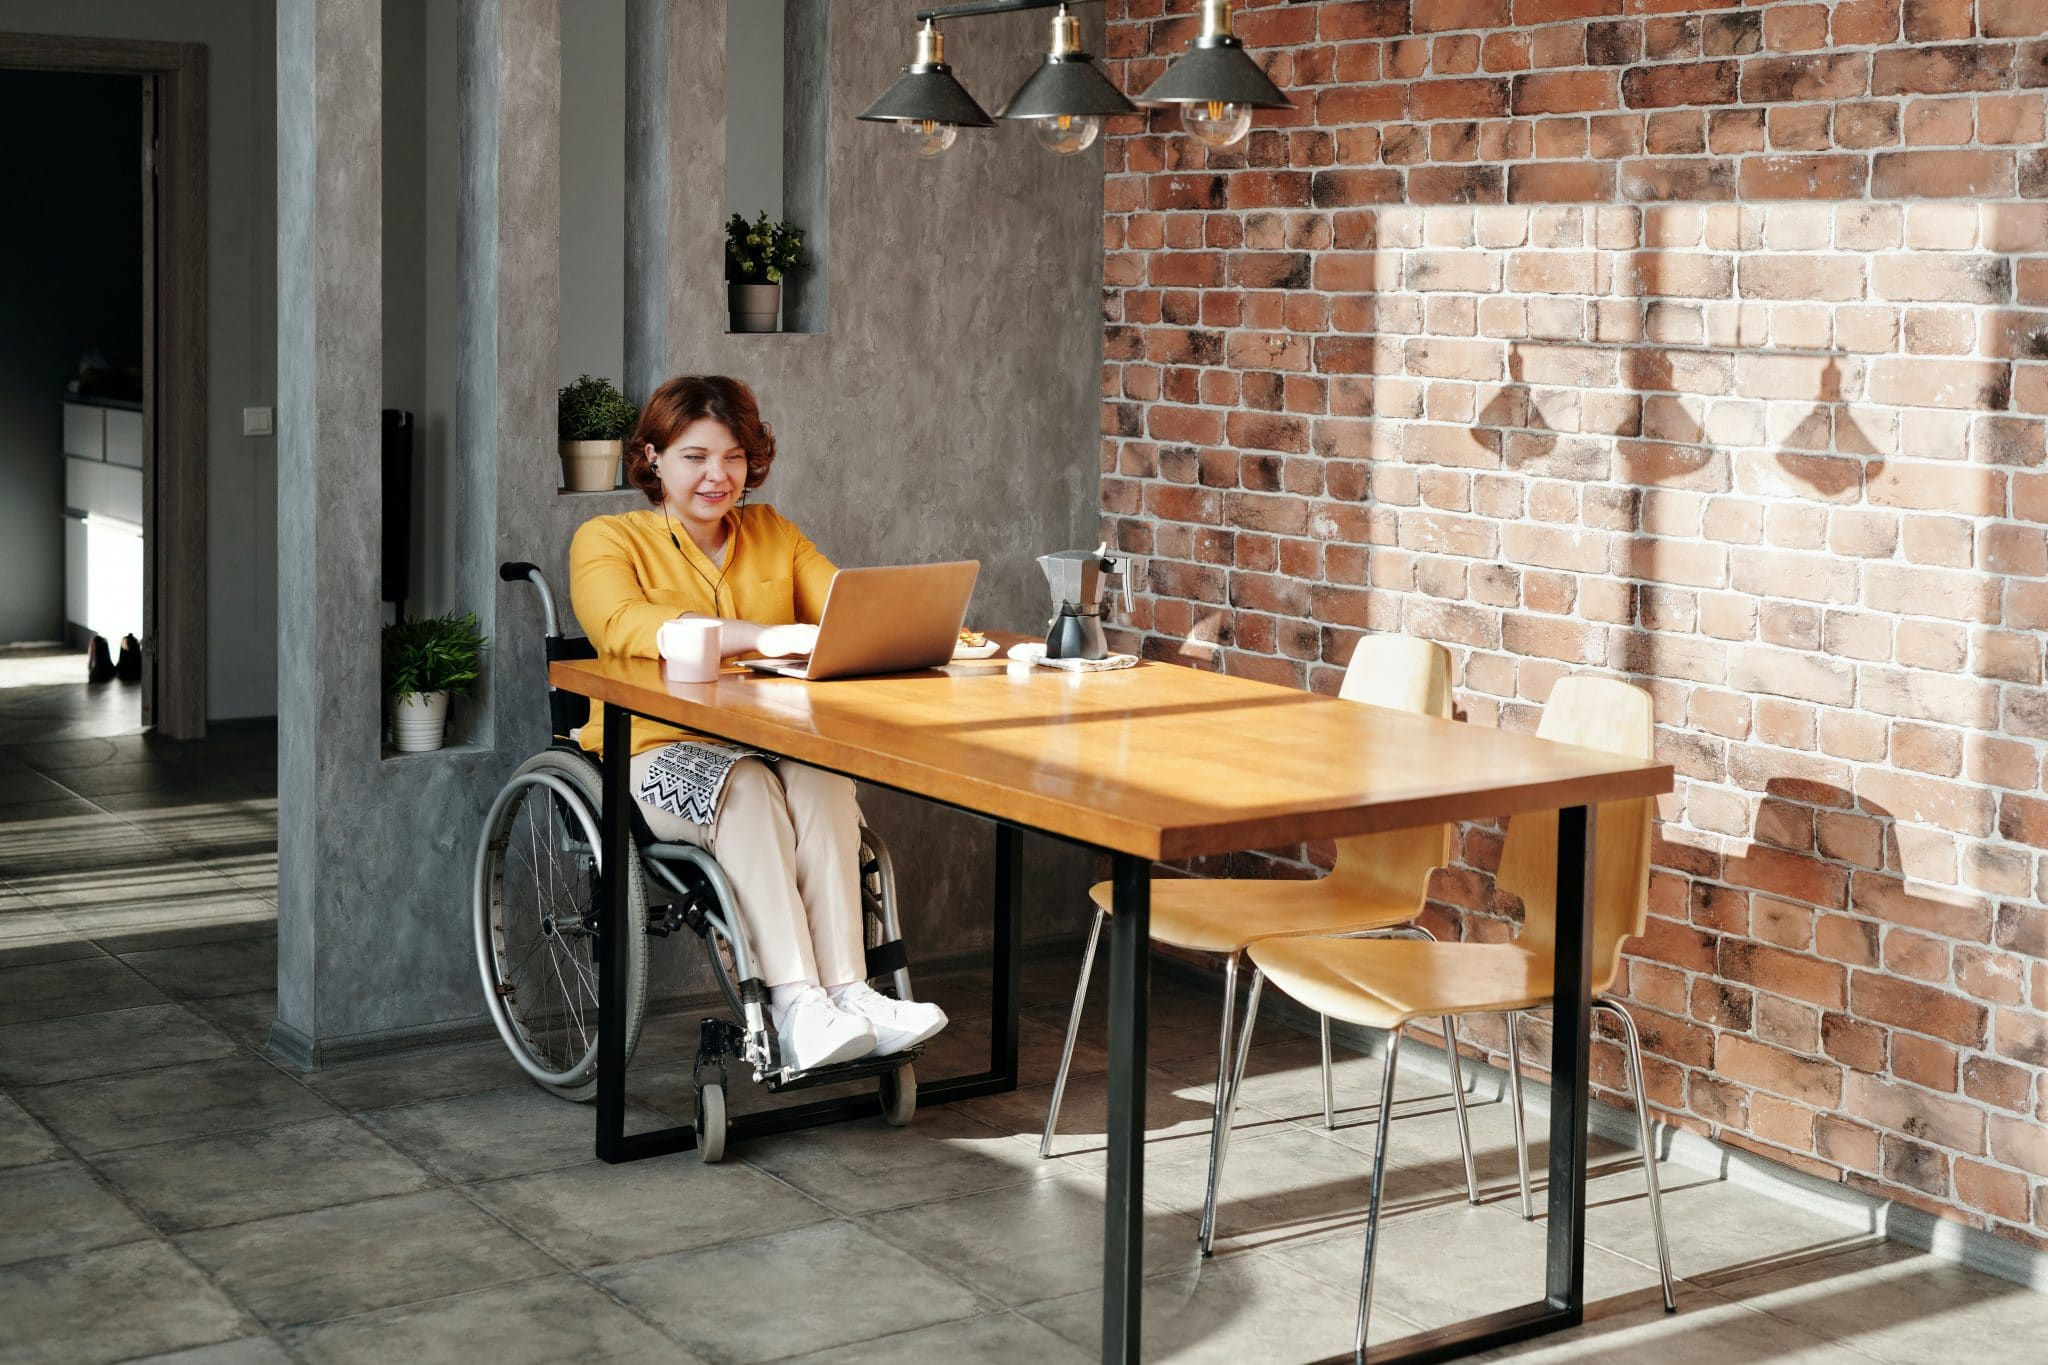 Job application for people with disabilities